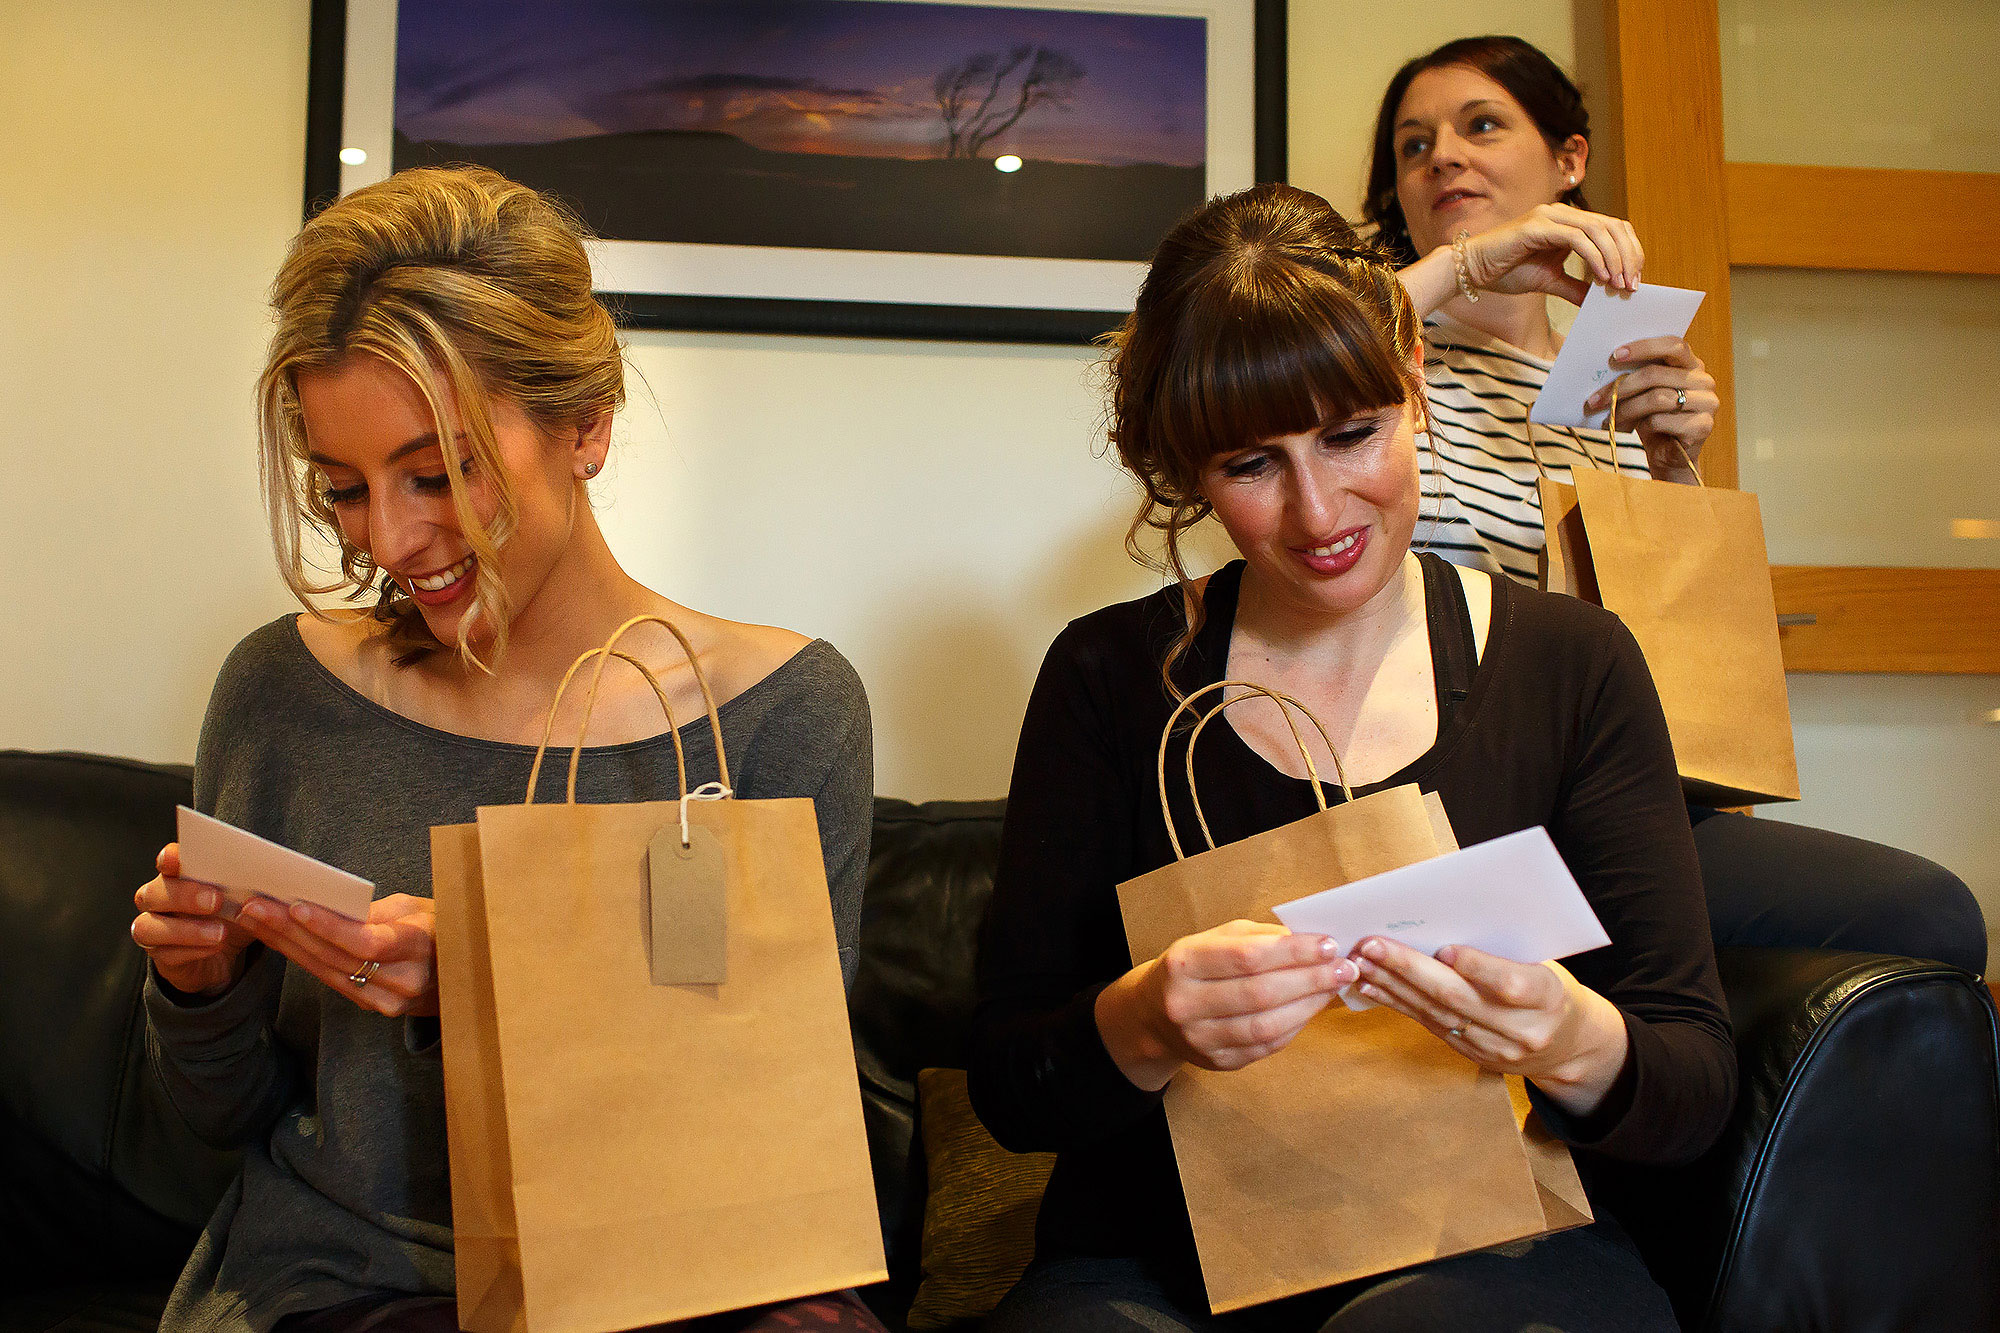 Bridesmaids opening wedding presents in brown paper bags - The Out Barn at Clough Bottom Wedding Photography